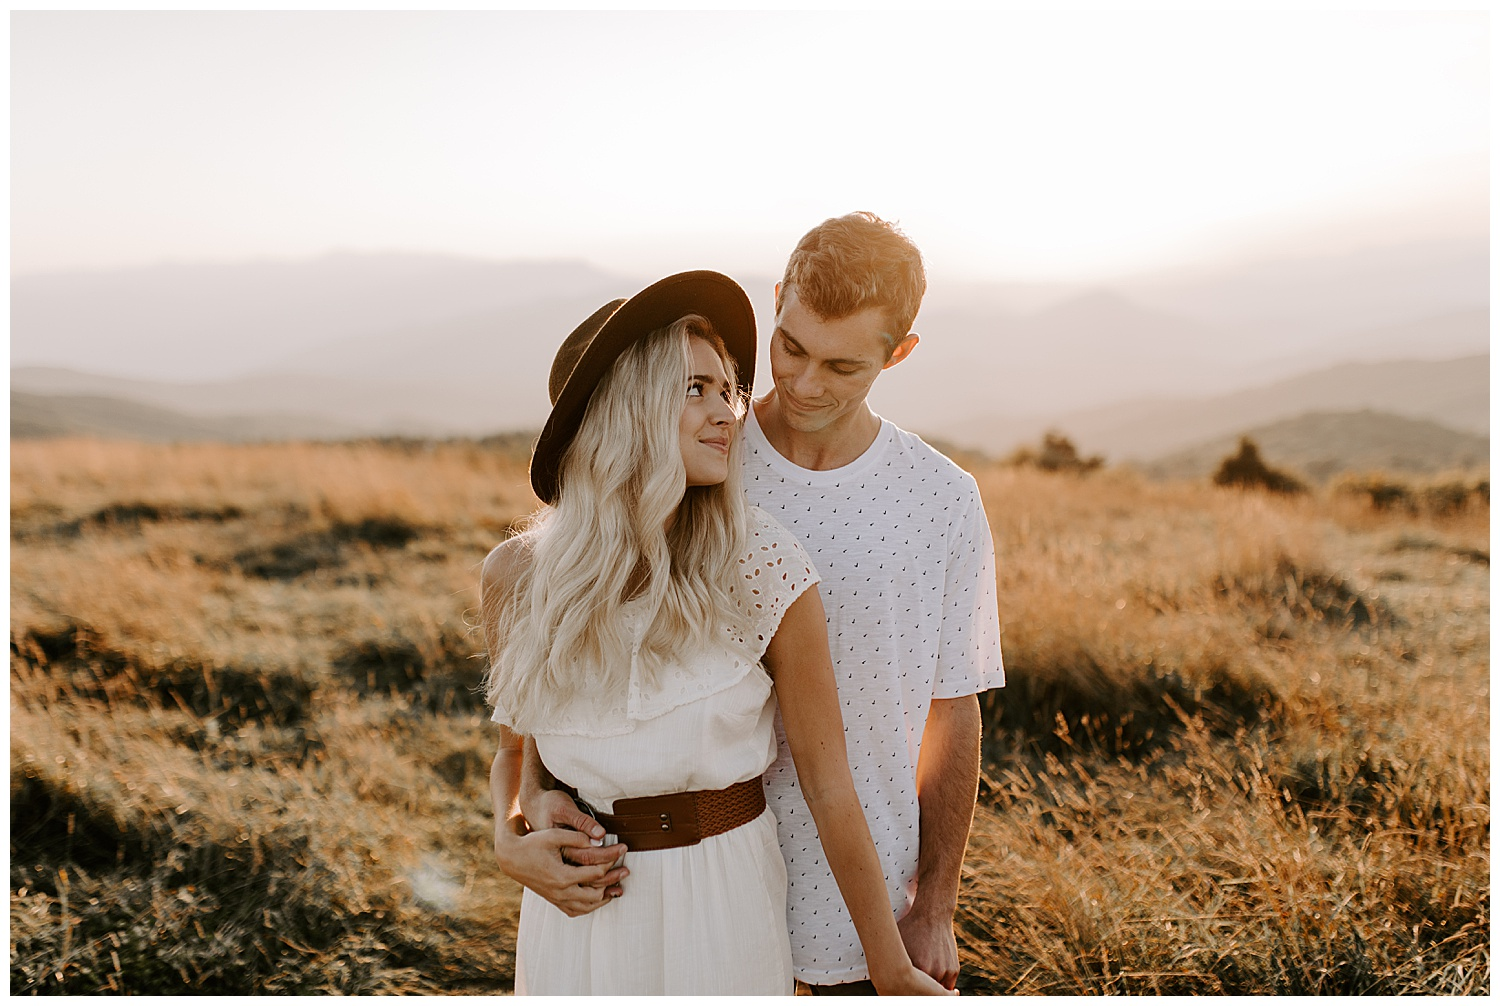 HANNAH_NICK_MAXPATCH_ENGAGEMENT2019-09-05_0013.jpg